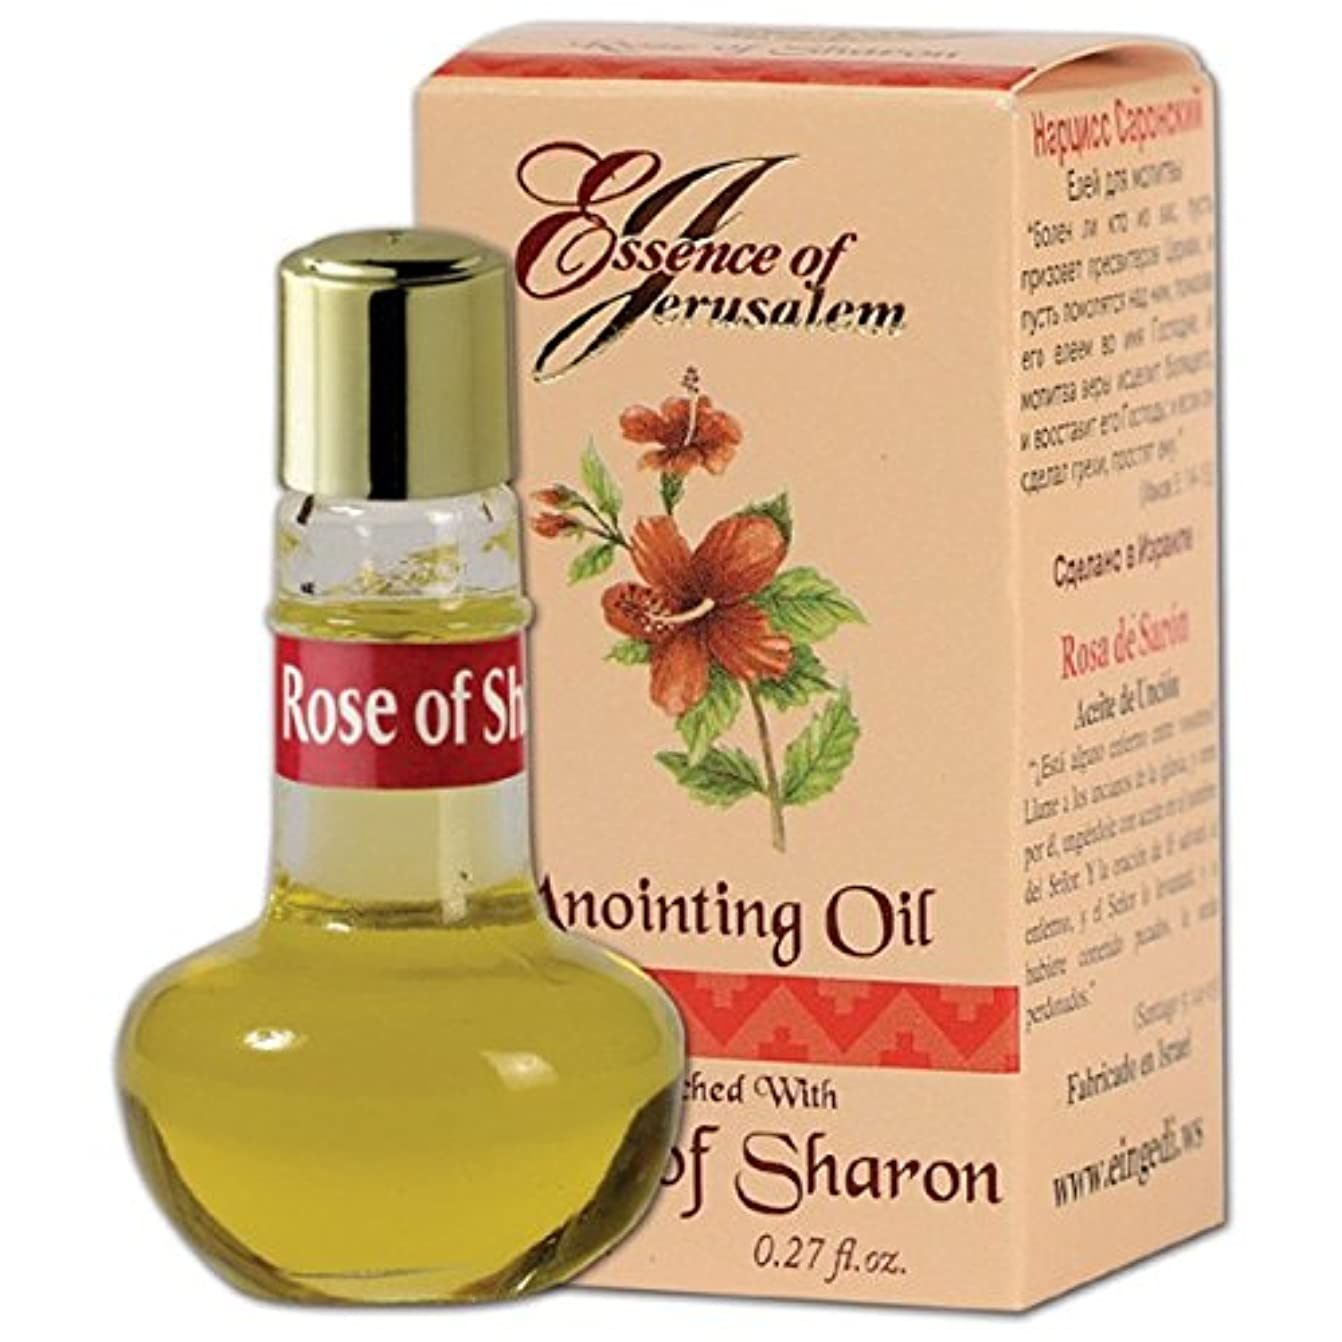 Essence of Jerusalem Anointing Oil Enriched with Biblicalスパイス0.27 FL OZ byベツレヘムギフトTM